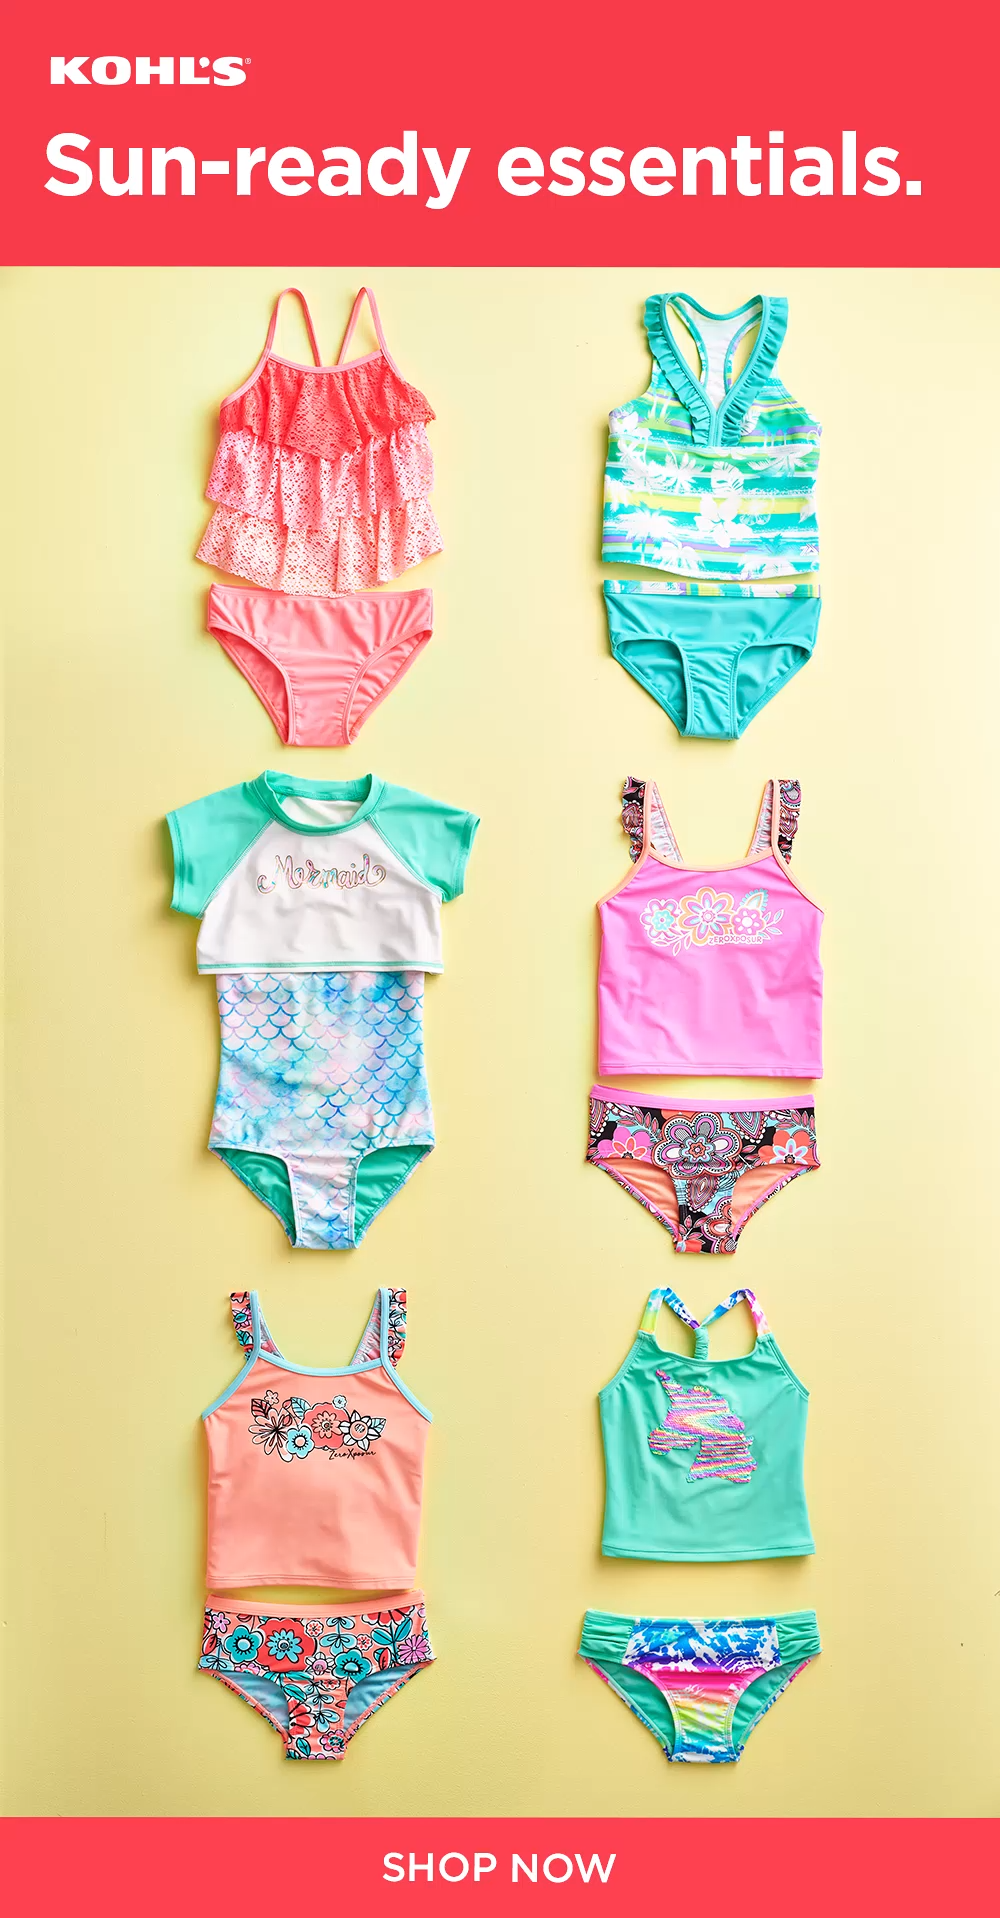 d499e4fd99e4d Get your kids ready for sunny days ahead with swimsuits, sandals and  outdoor toys at